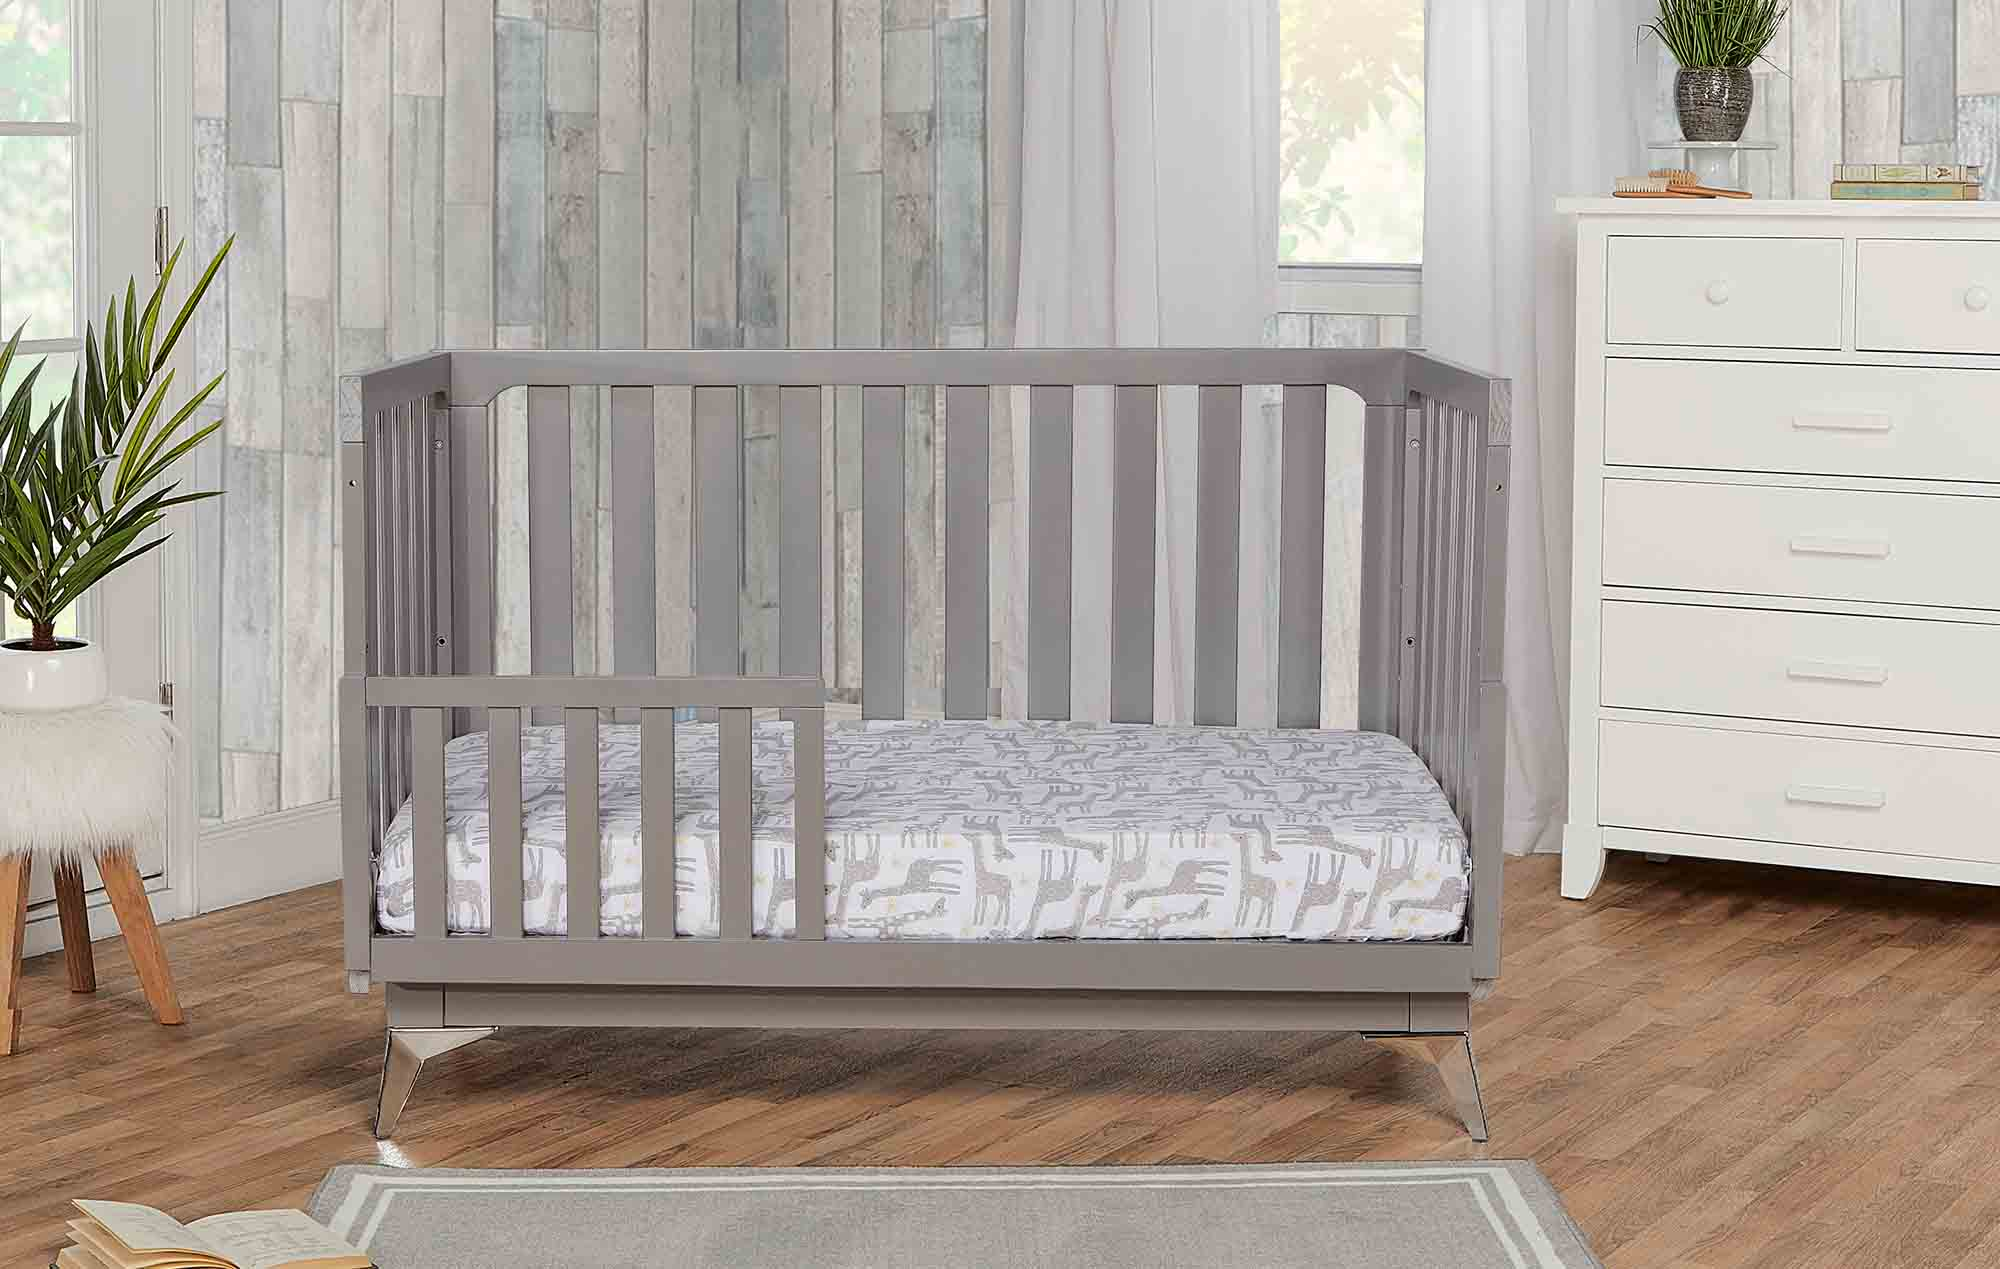 770-SGY London Toddler Bed Room Shot